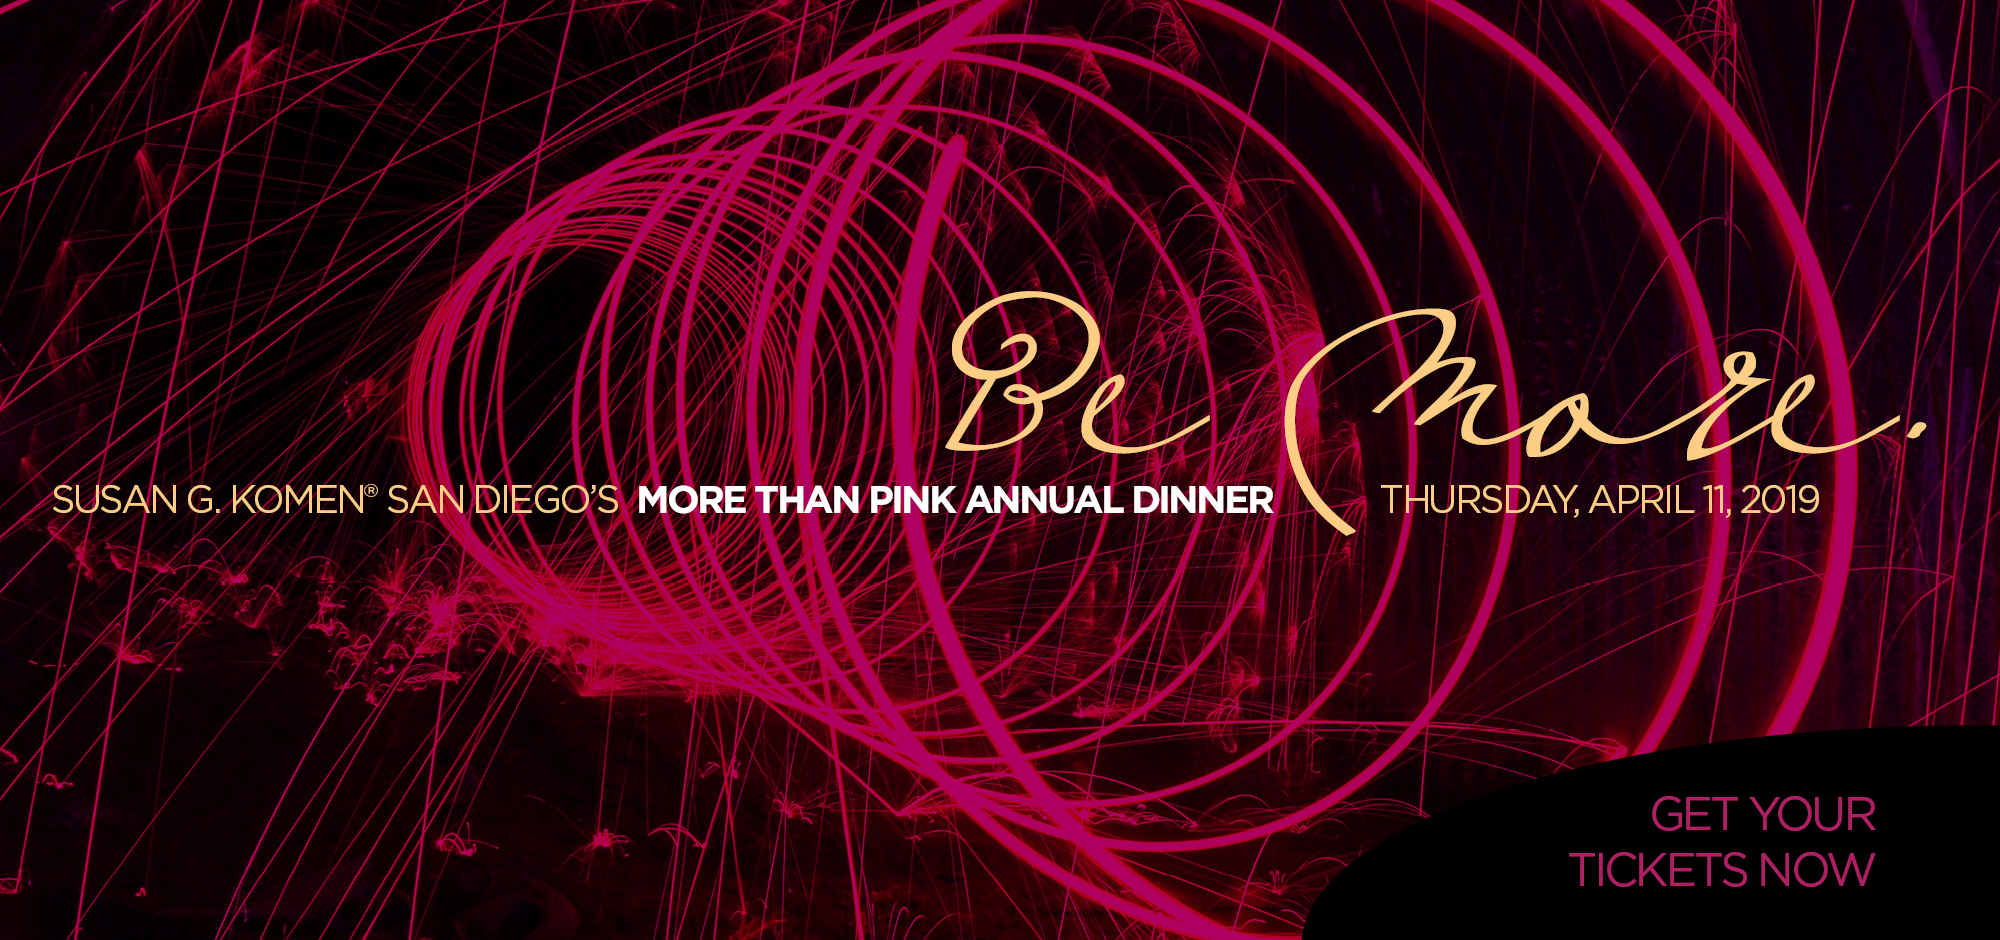 More Than Pink Annual Dinner